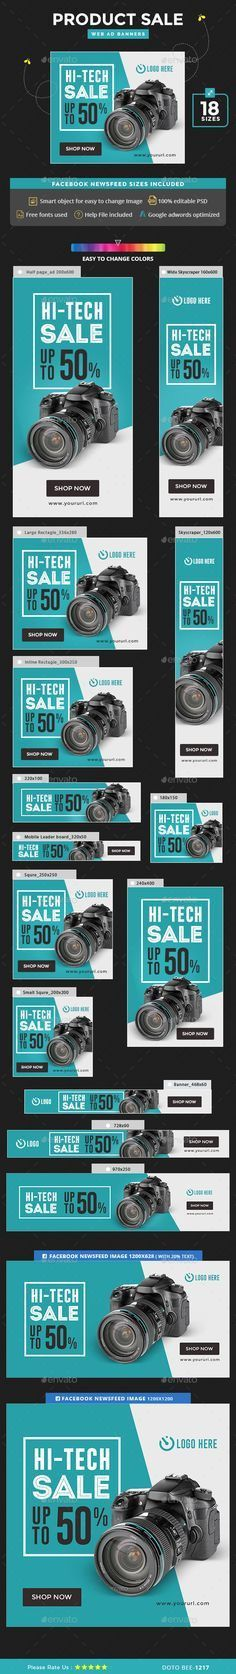 Gifts for Her & Him | Web banners, Banners and Photoshop